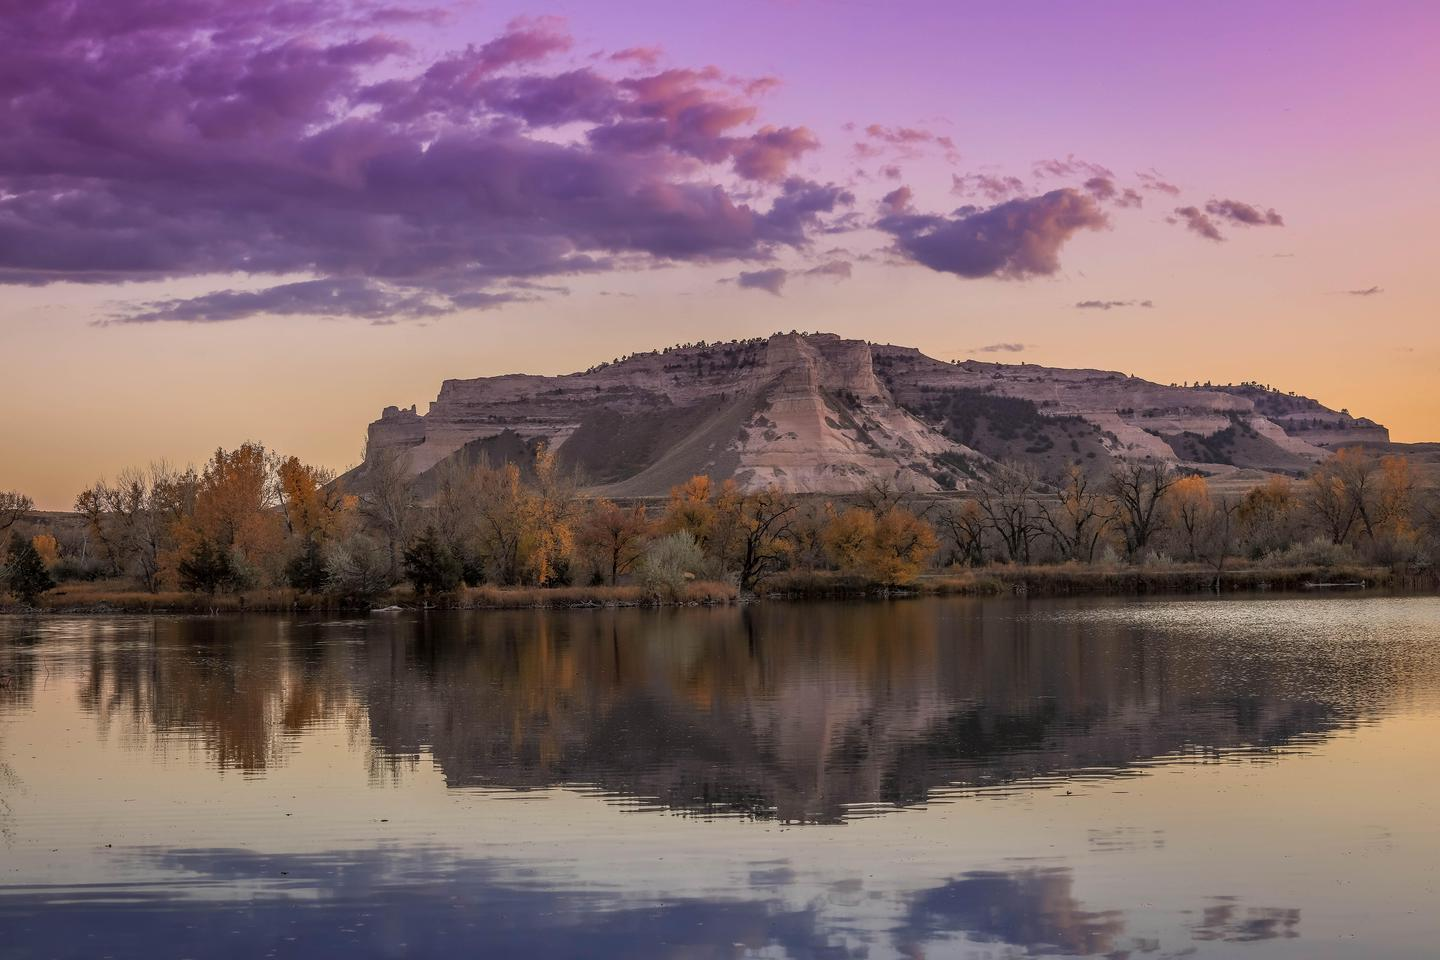 Scotts Bluff from the North Platte RIverScotts Bluff as seen from the north side of the North Platte River